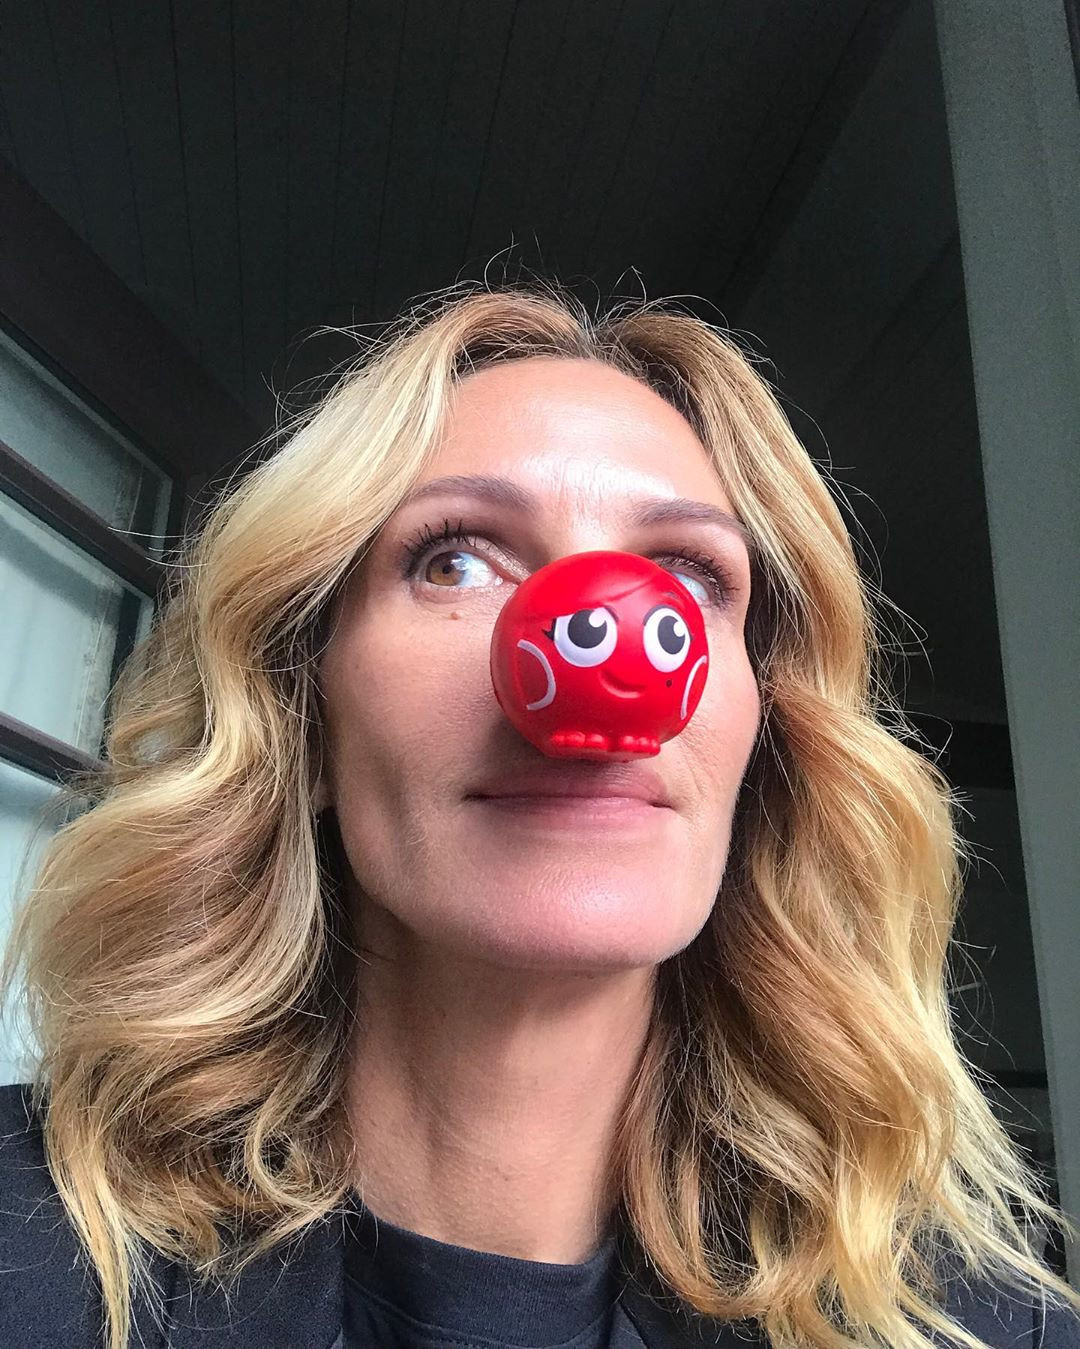 Mariah Carey, Jennifer Garner and More Stars Celebrate Red Nose Day 2019